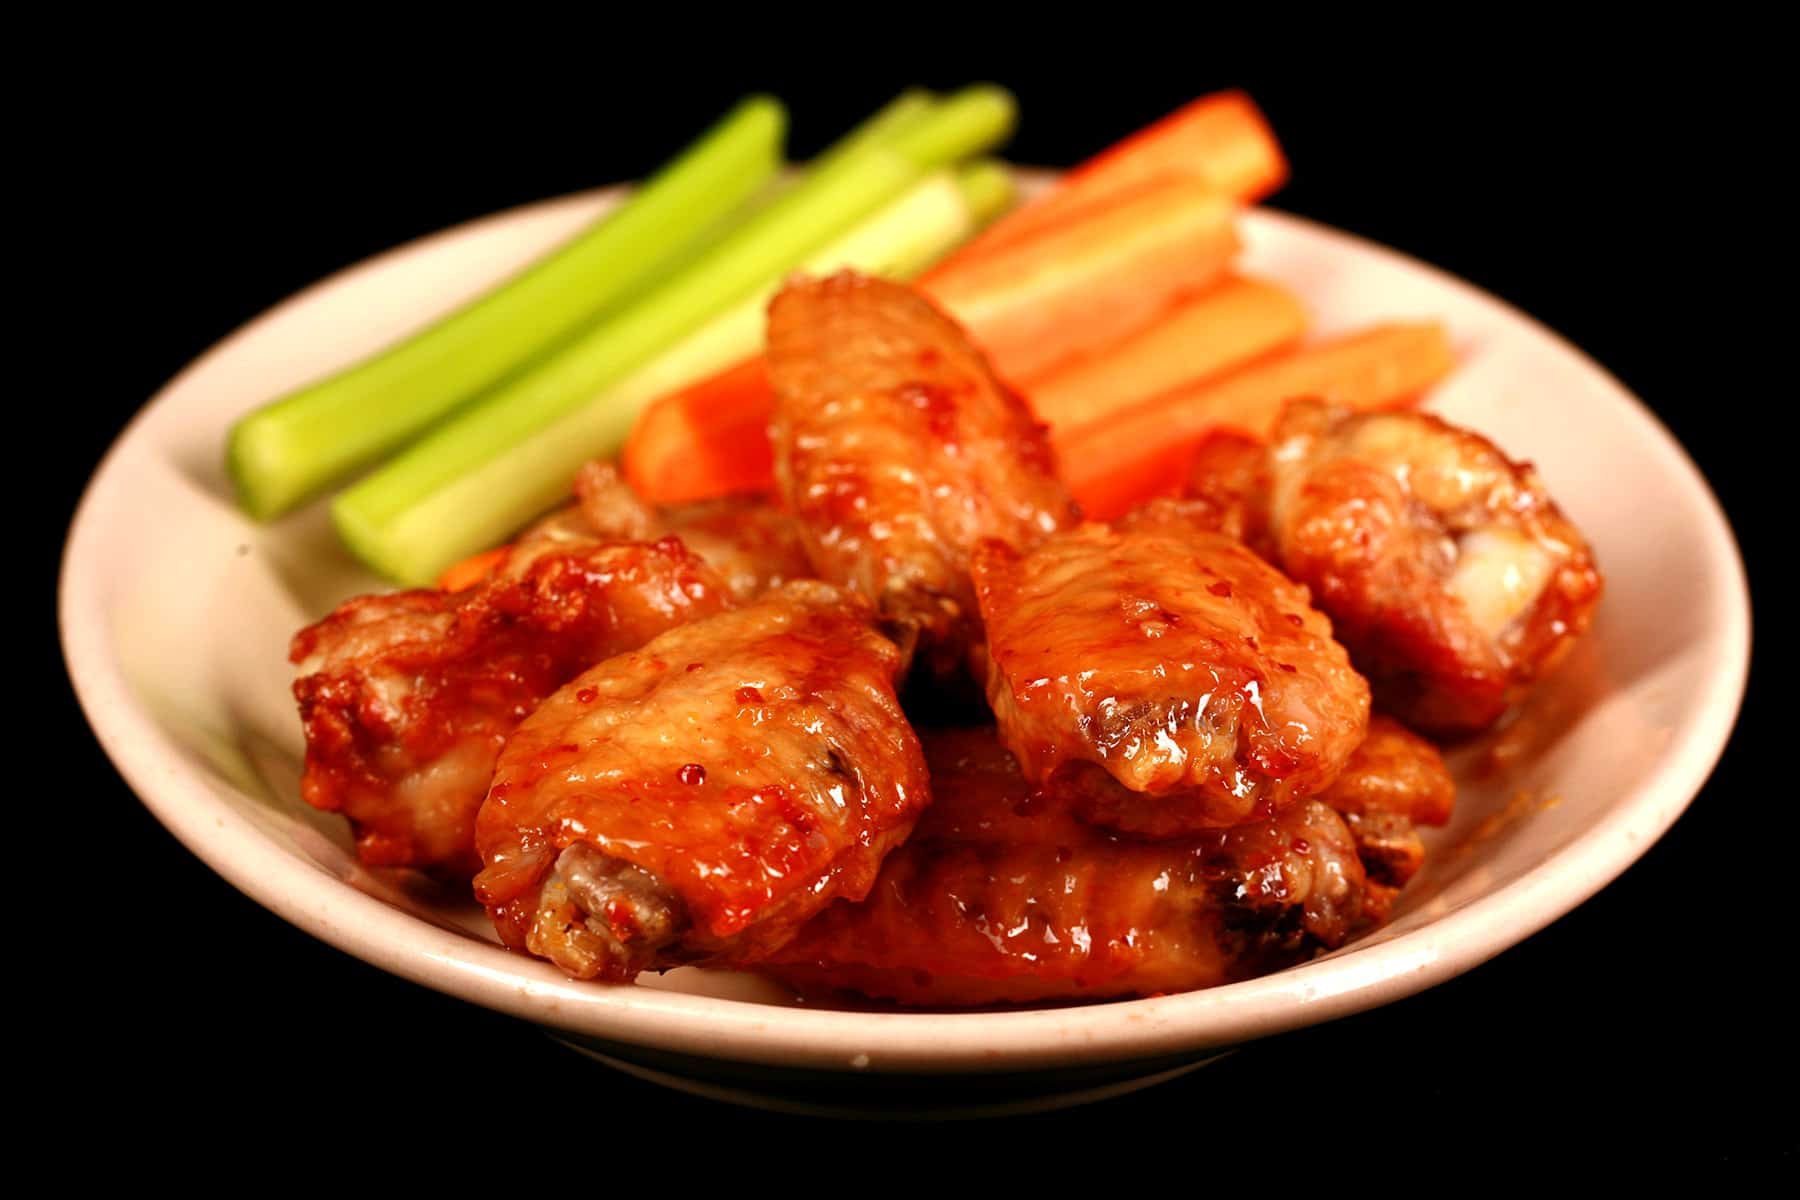 A small plate of maple dijon wings, with carrot and celery sticks on the side.